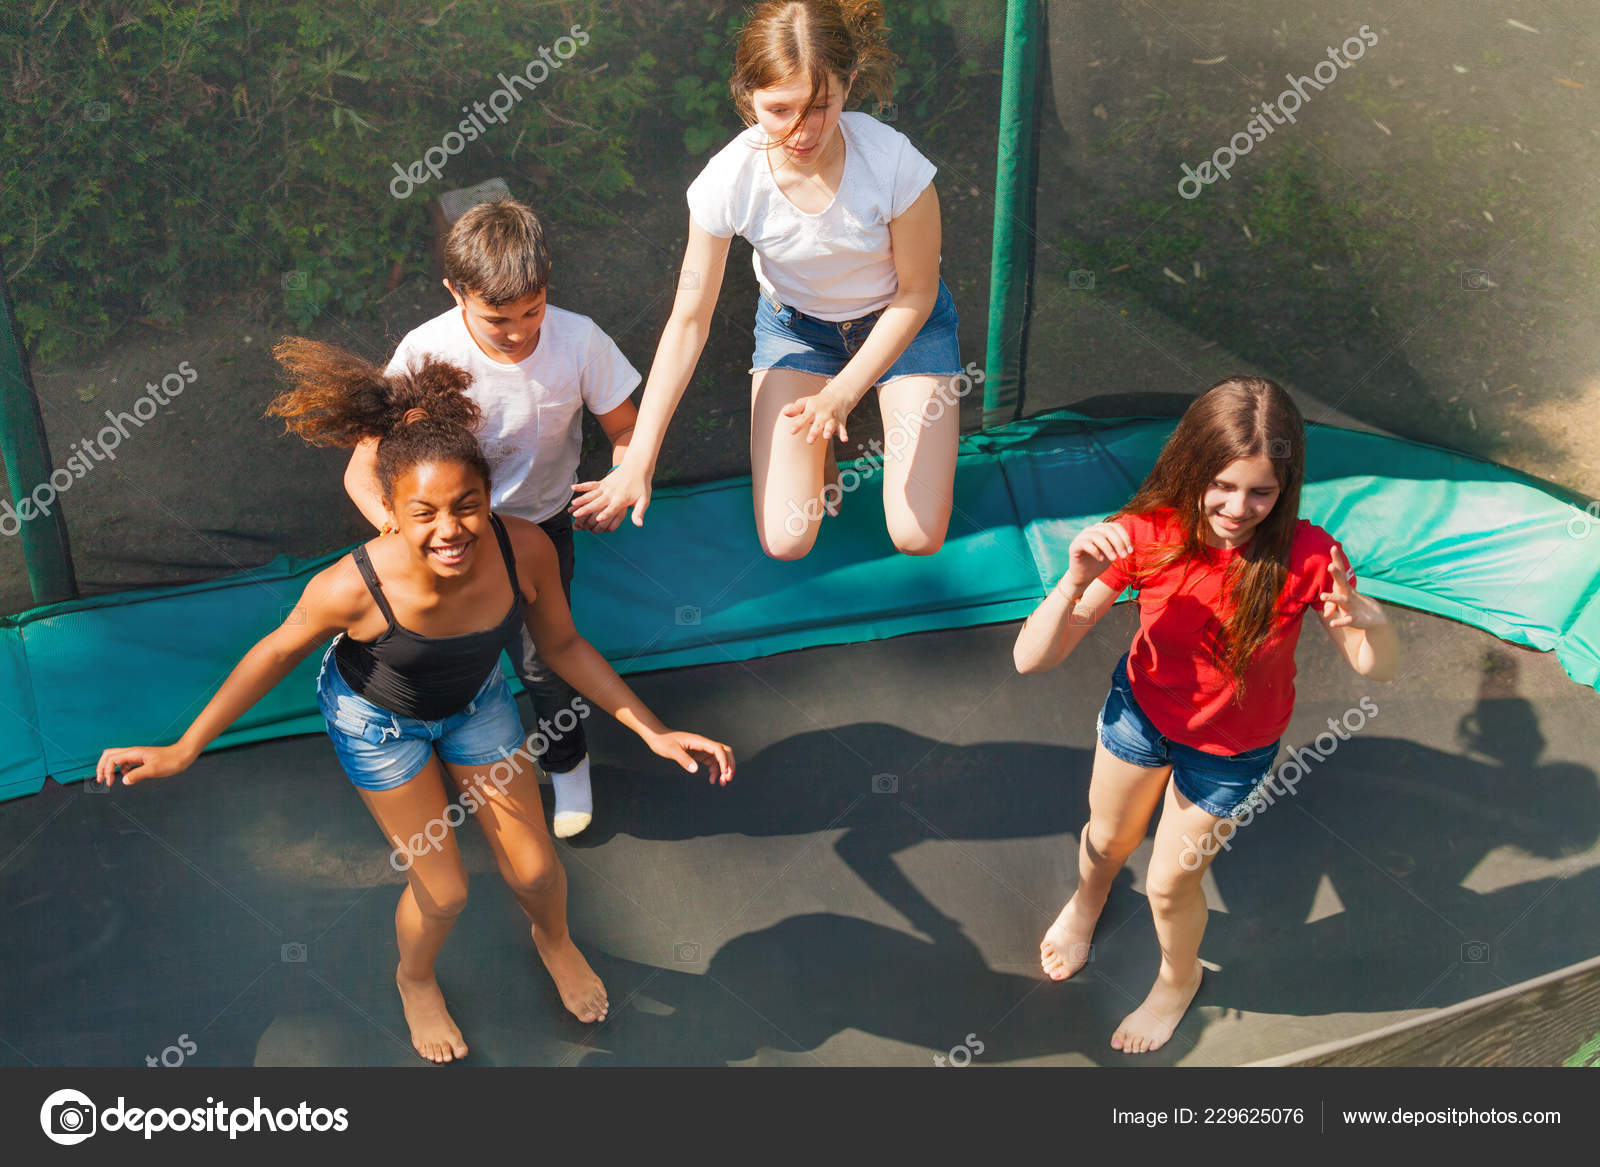 Top View Four Friends Teenage Girls Boys Bouncing Outdoor Trampoline —  Stock Photo